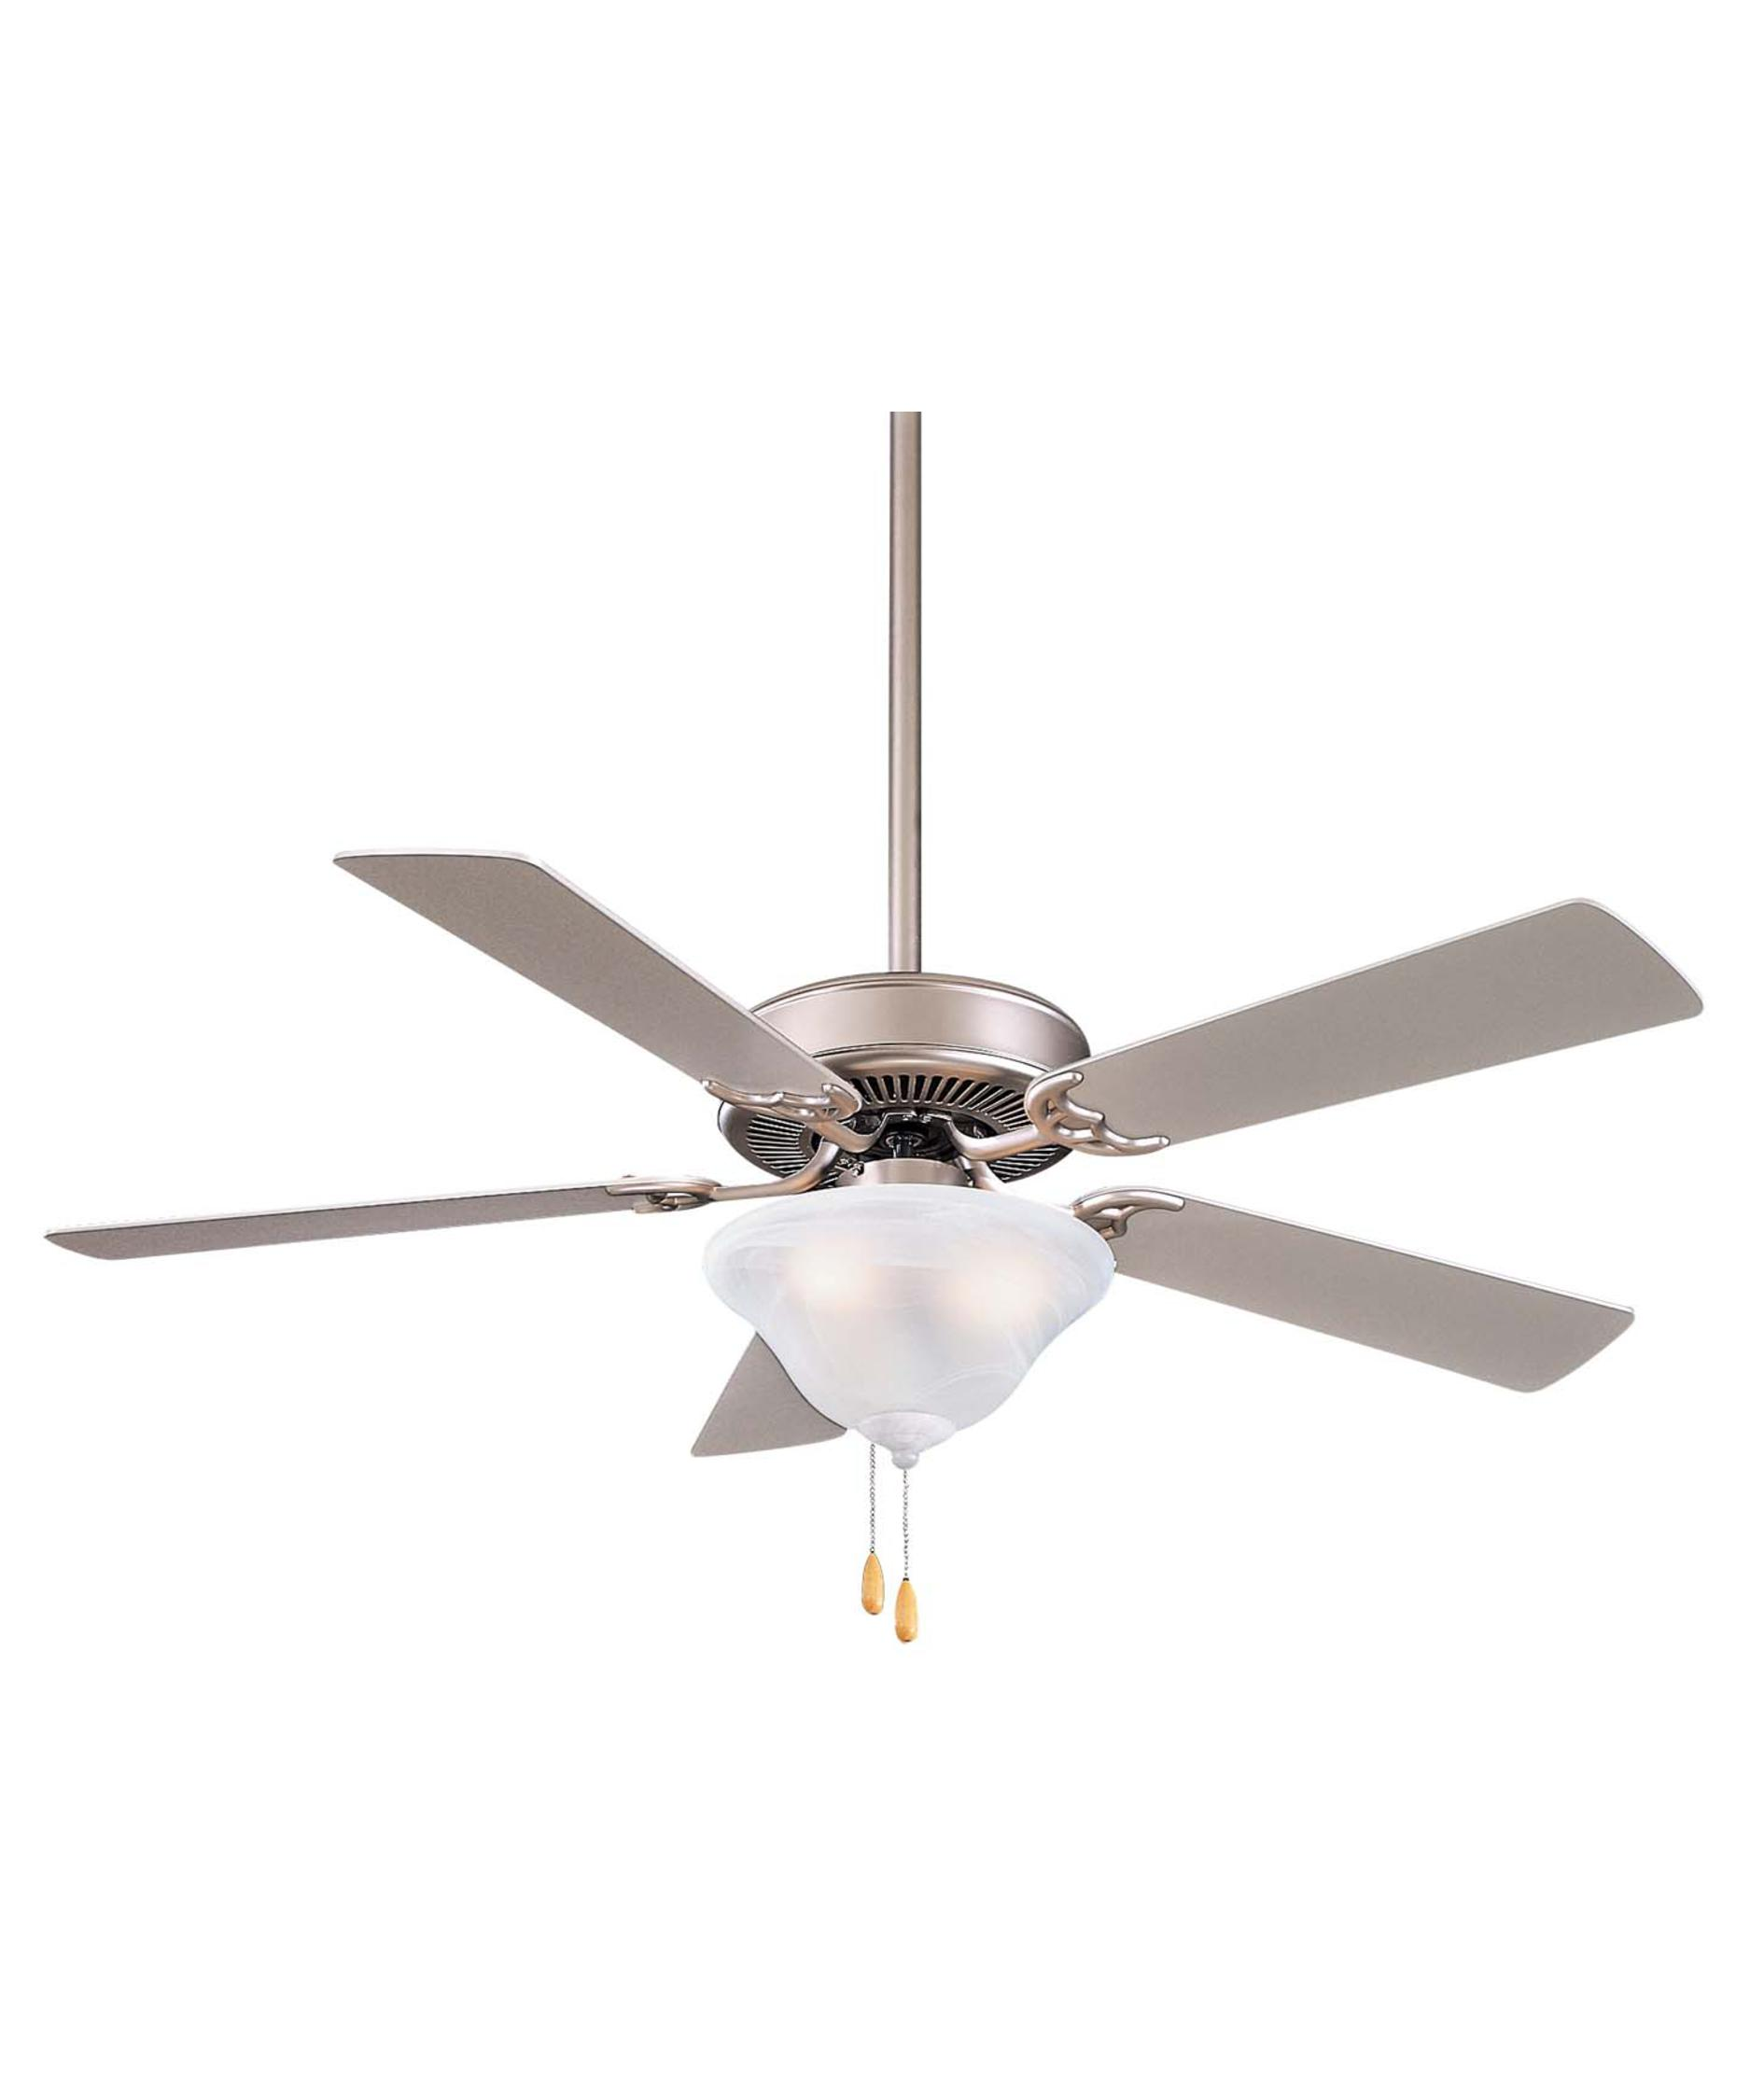 Murray Feiss Ceiling Fan Light Kit: Minka Aire F548 Conctractor Unipack 52 Inch Ceiling Fan